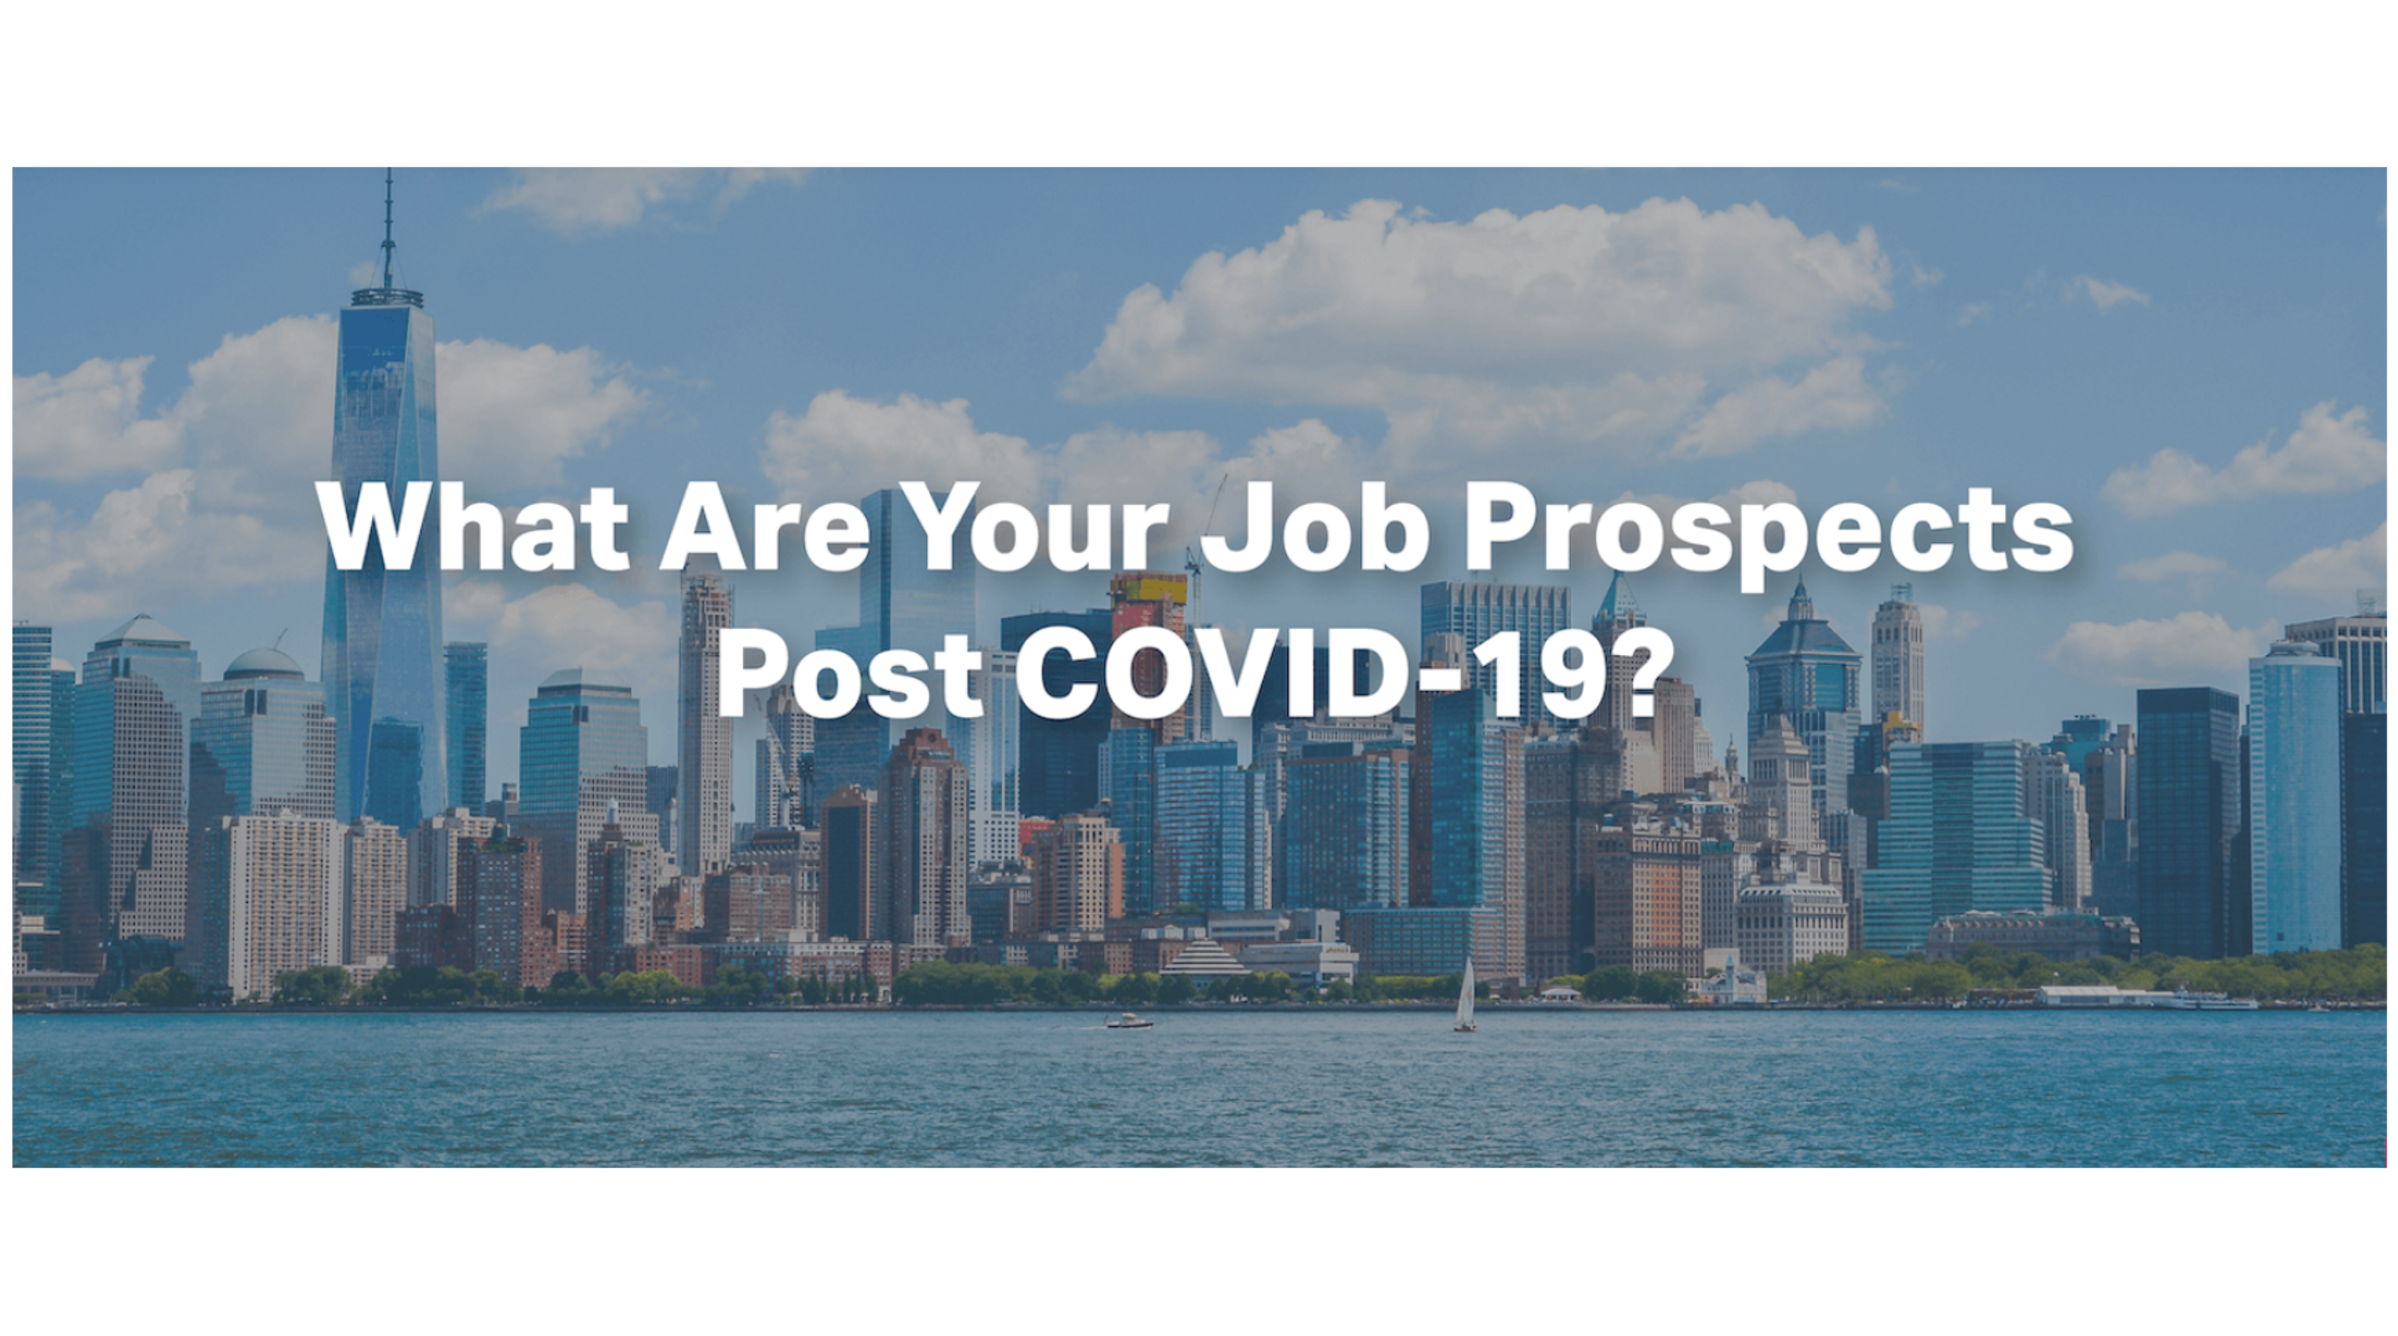 What are your job prospects post COVID-19?